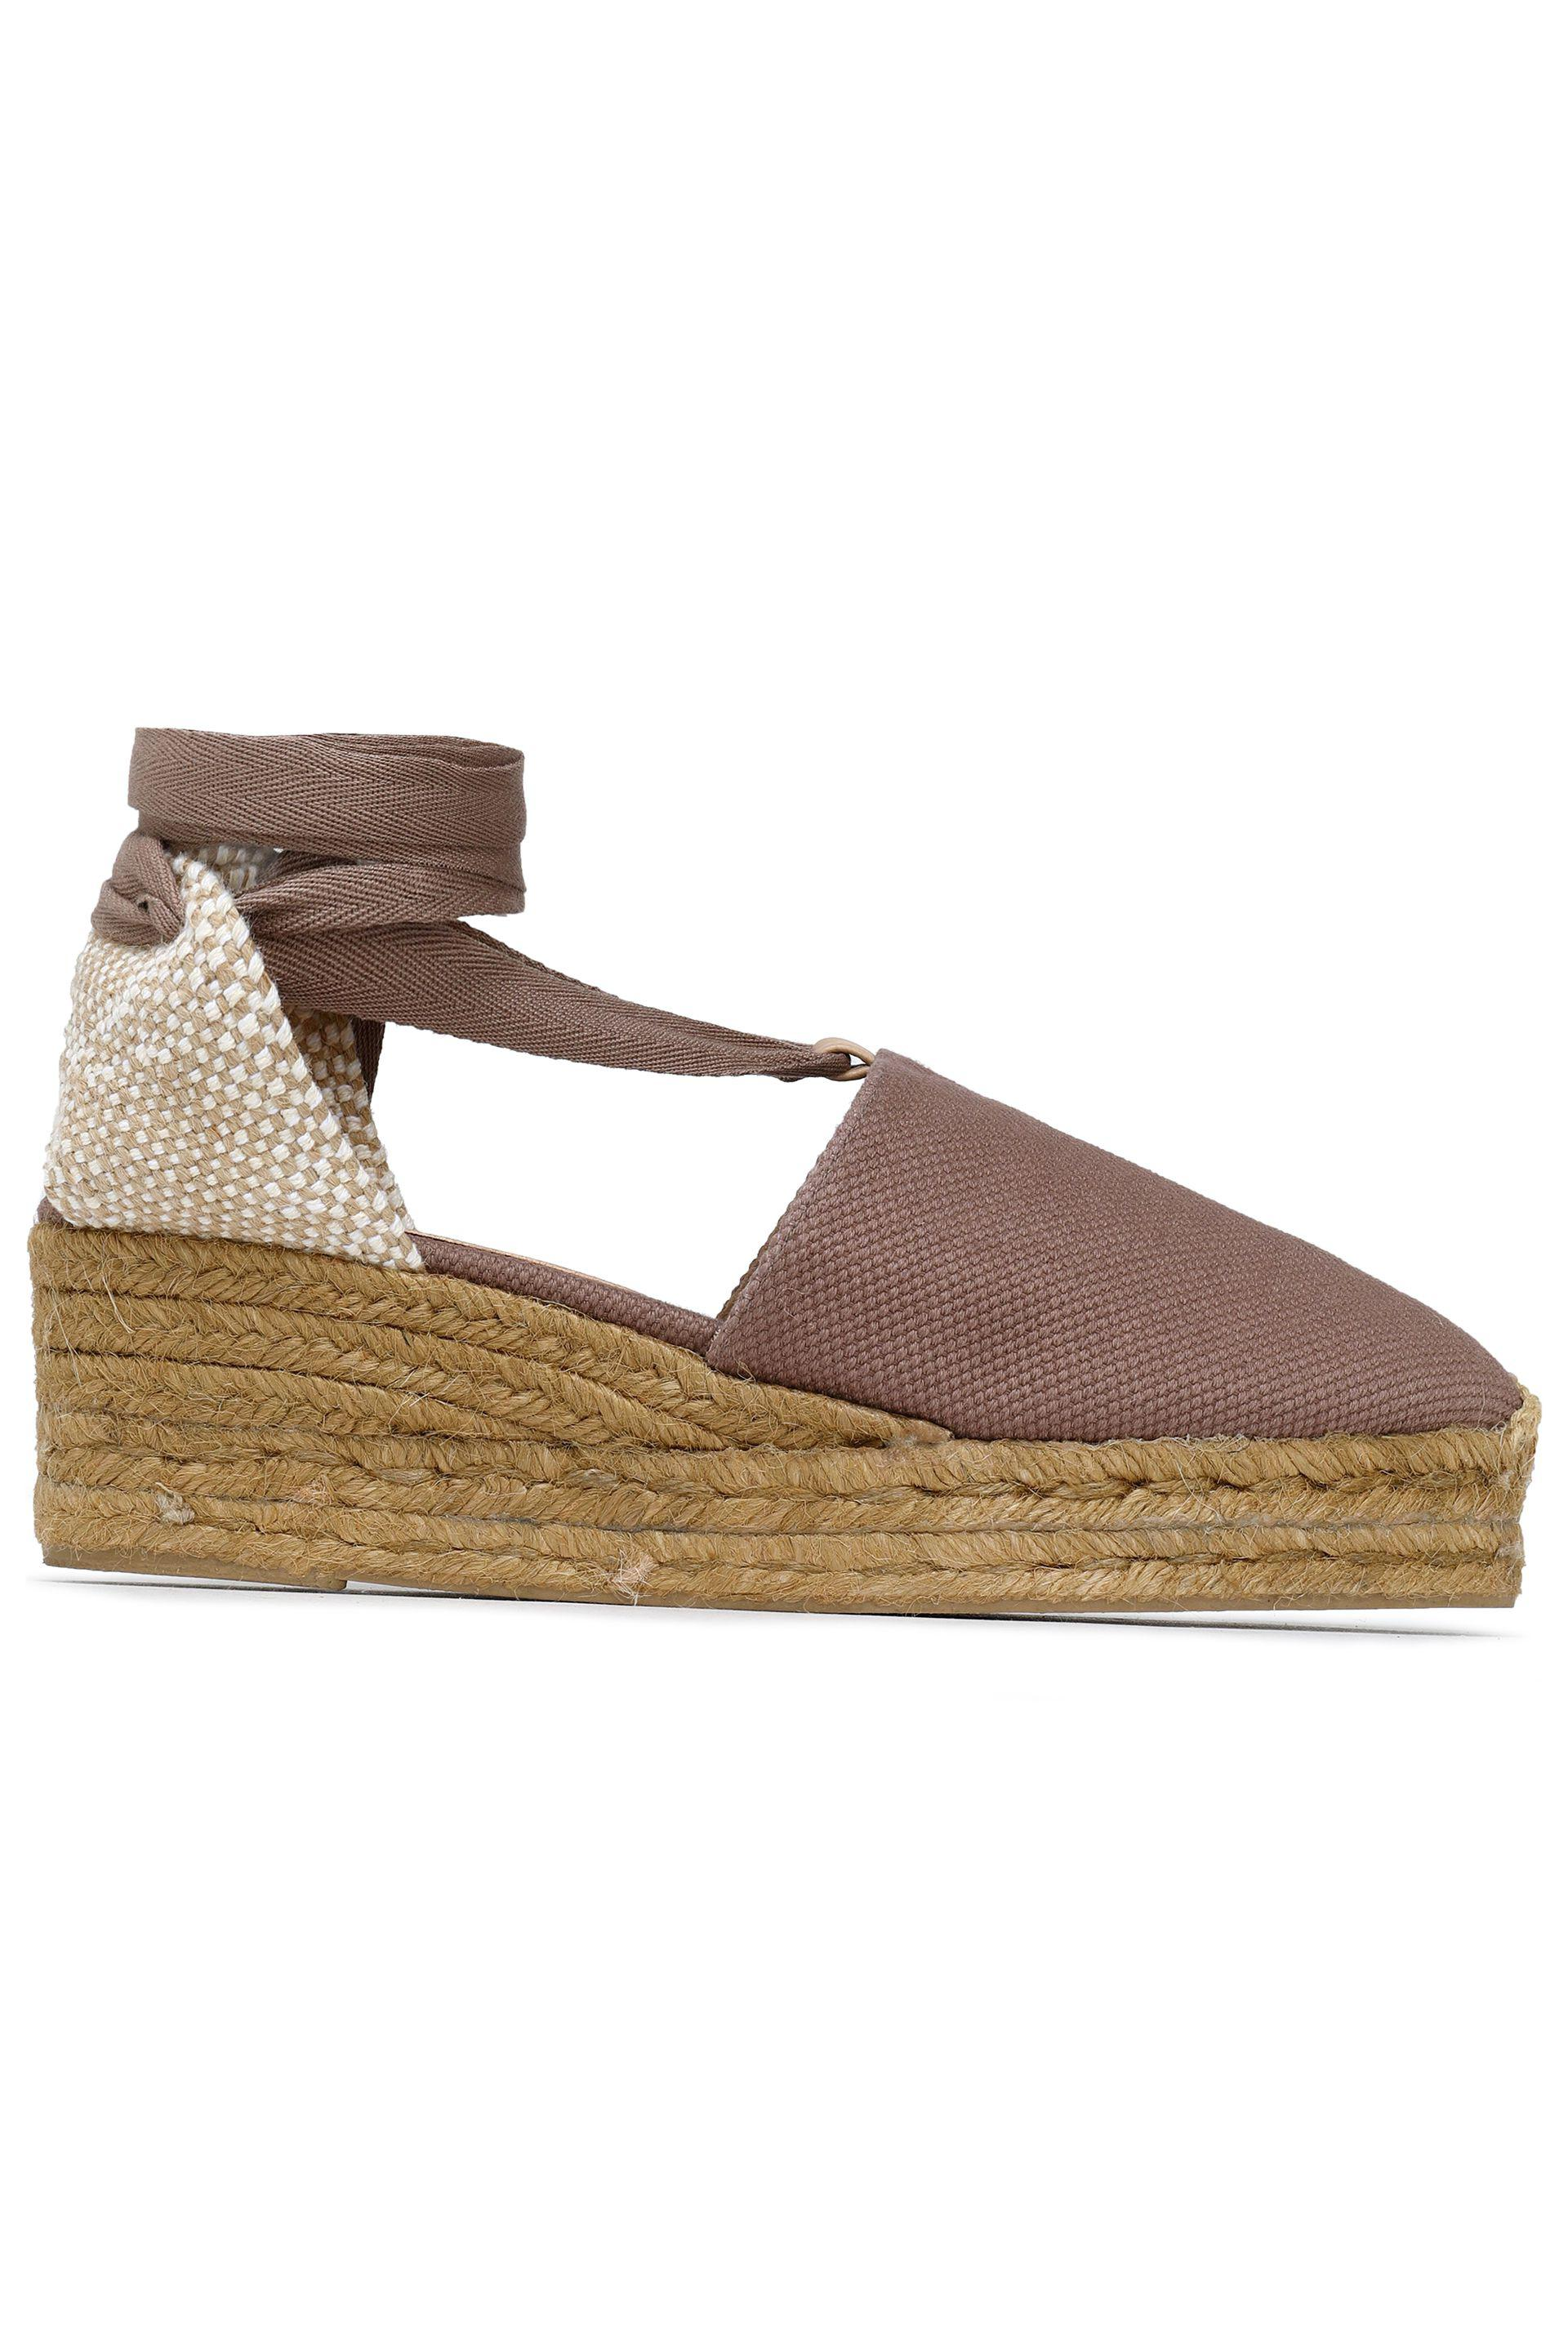 149c4bc6ae Castaner Campina Basketweave And Canvas Wedge Espadrilles in Brown ...